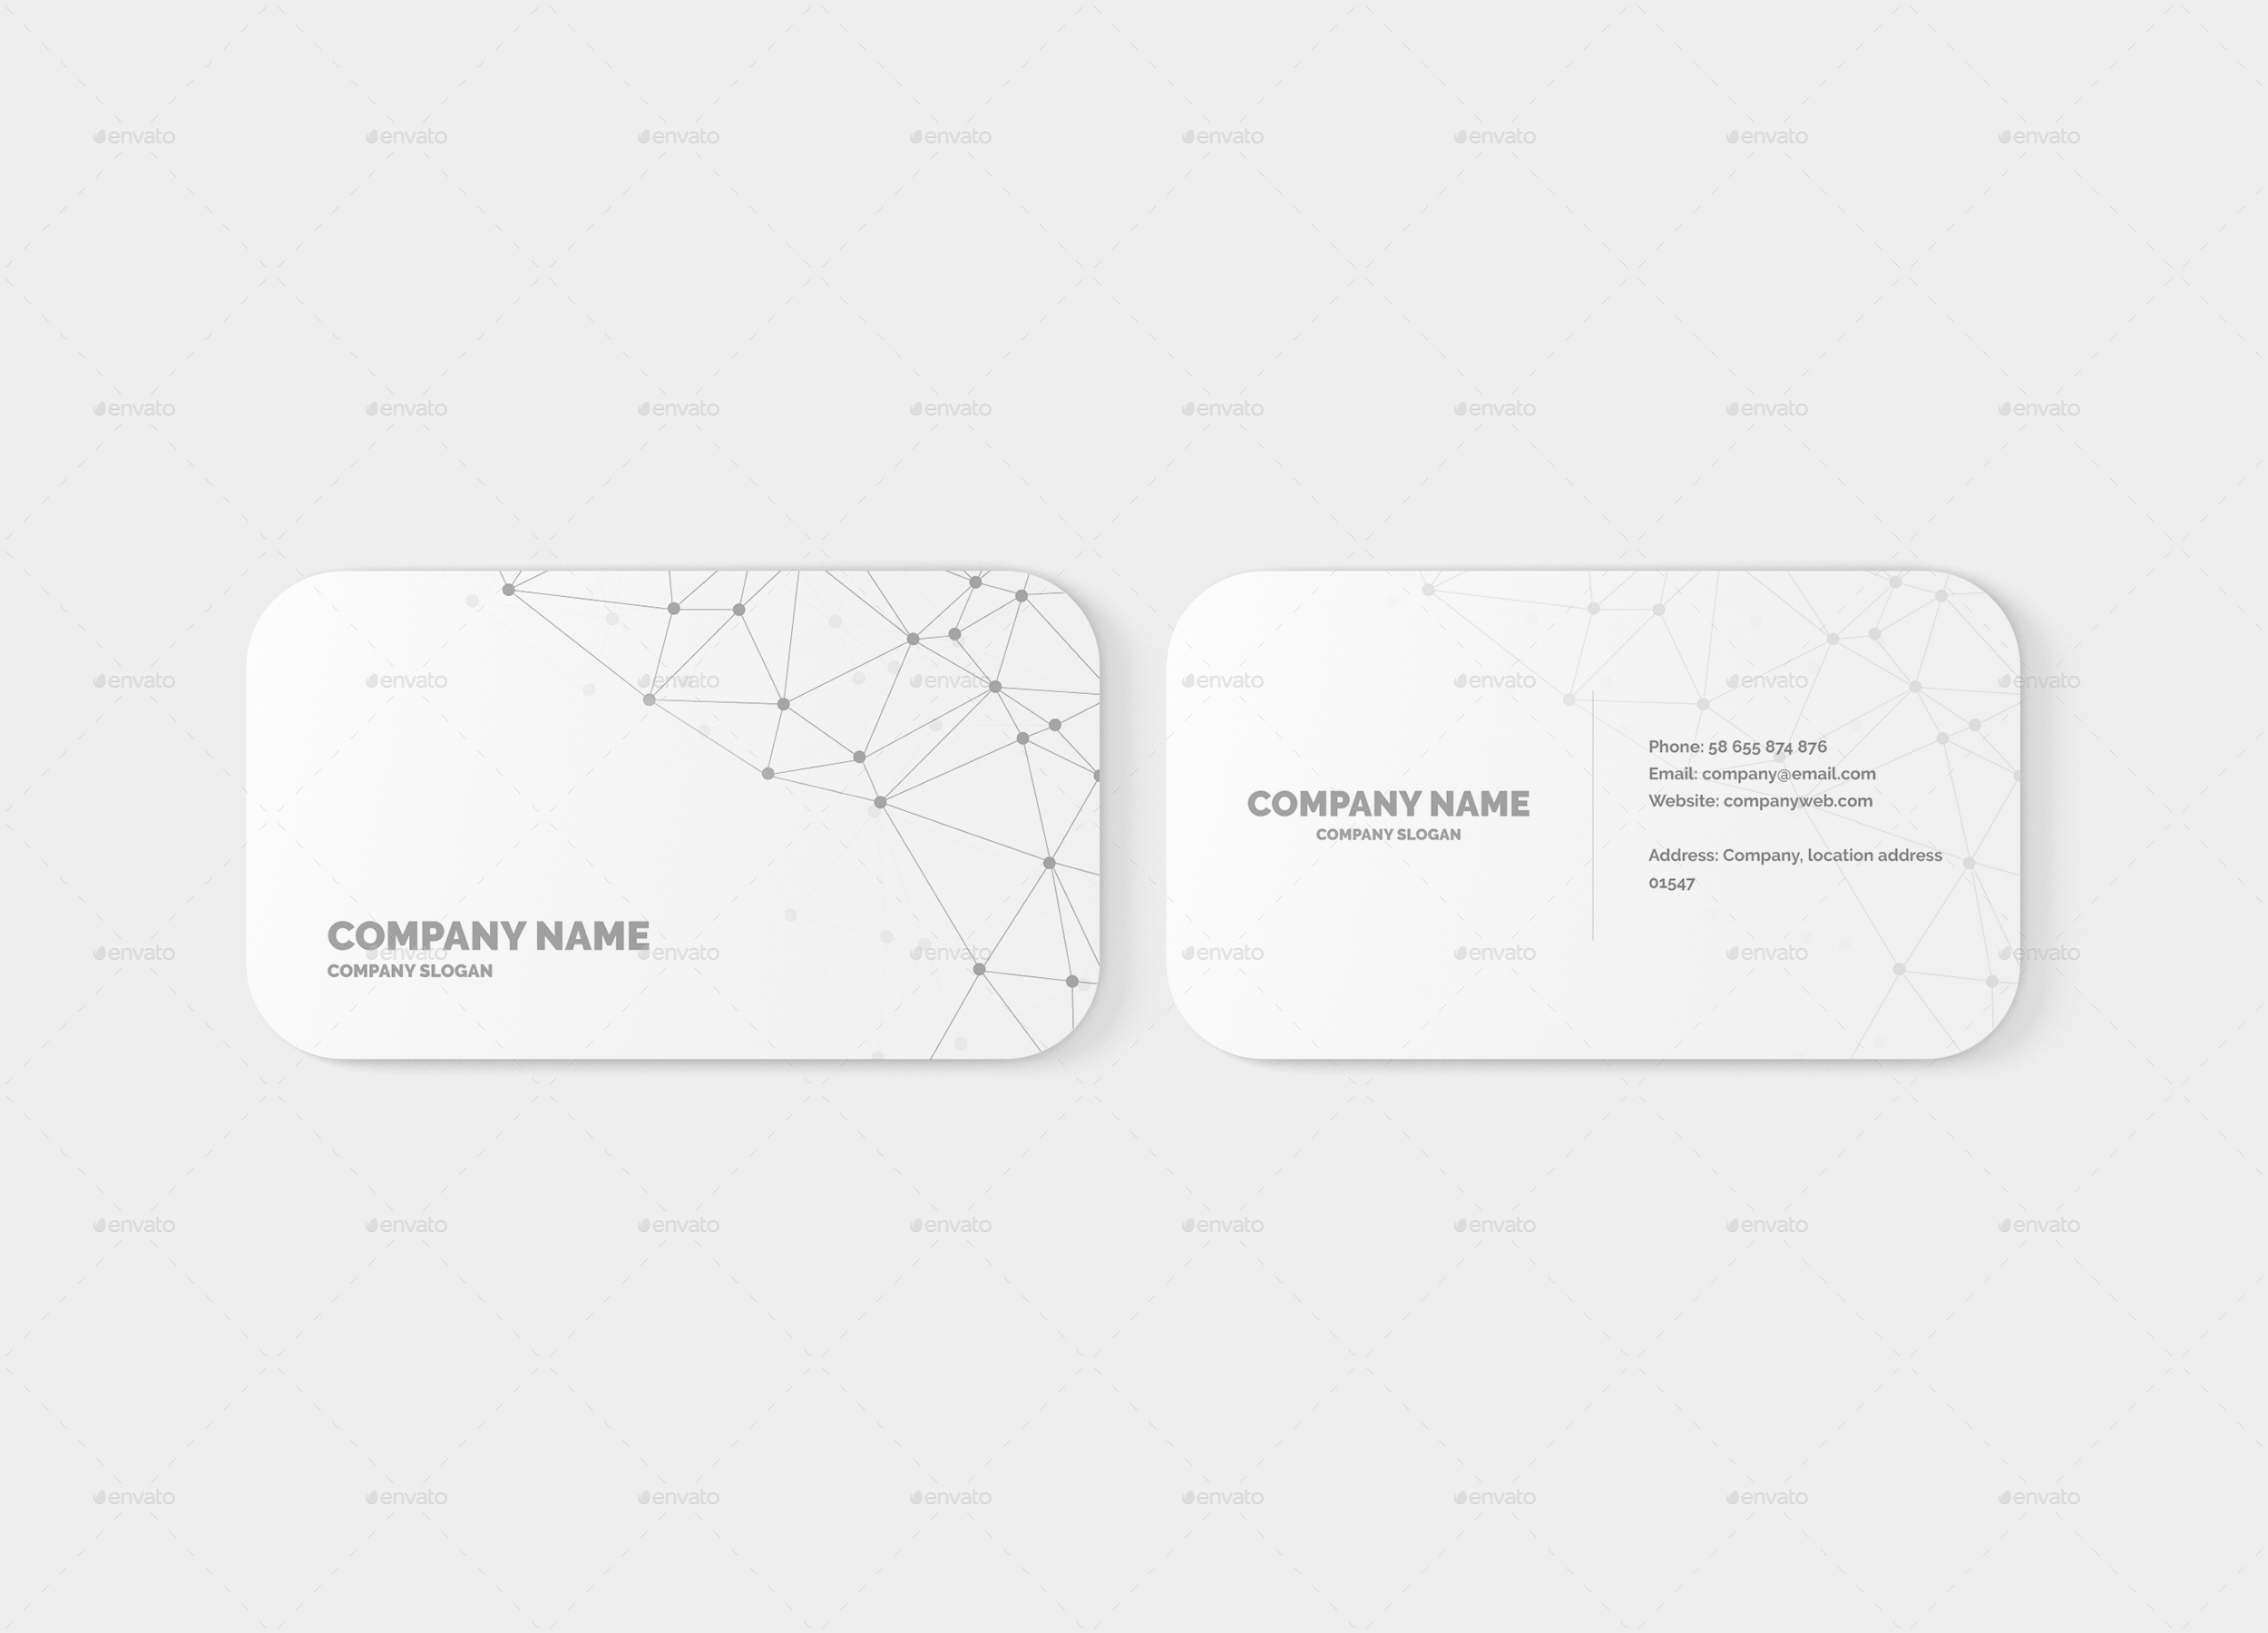 Business card mockup round corners by toasin graphicriver for Business card rounded corners